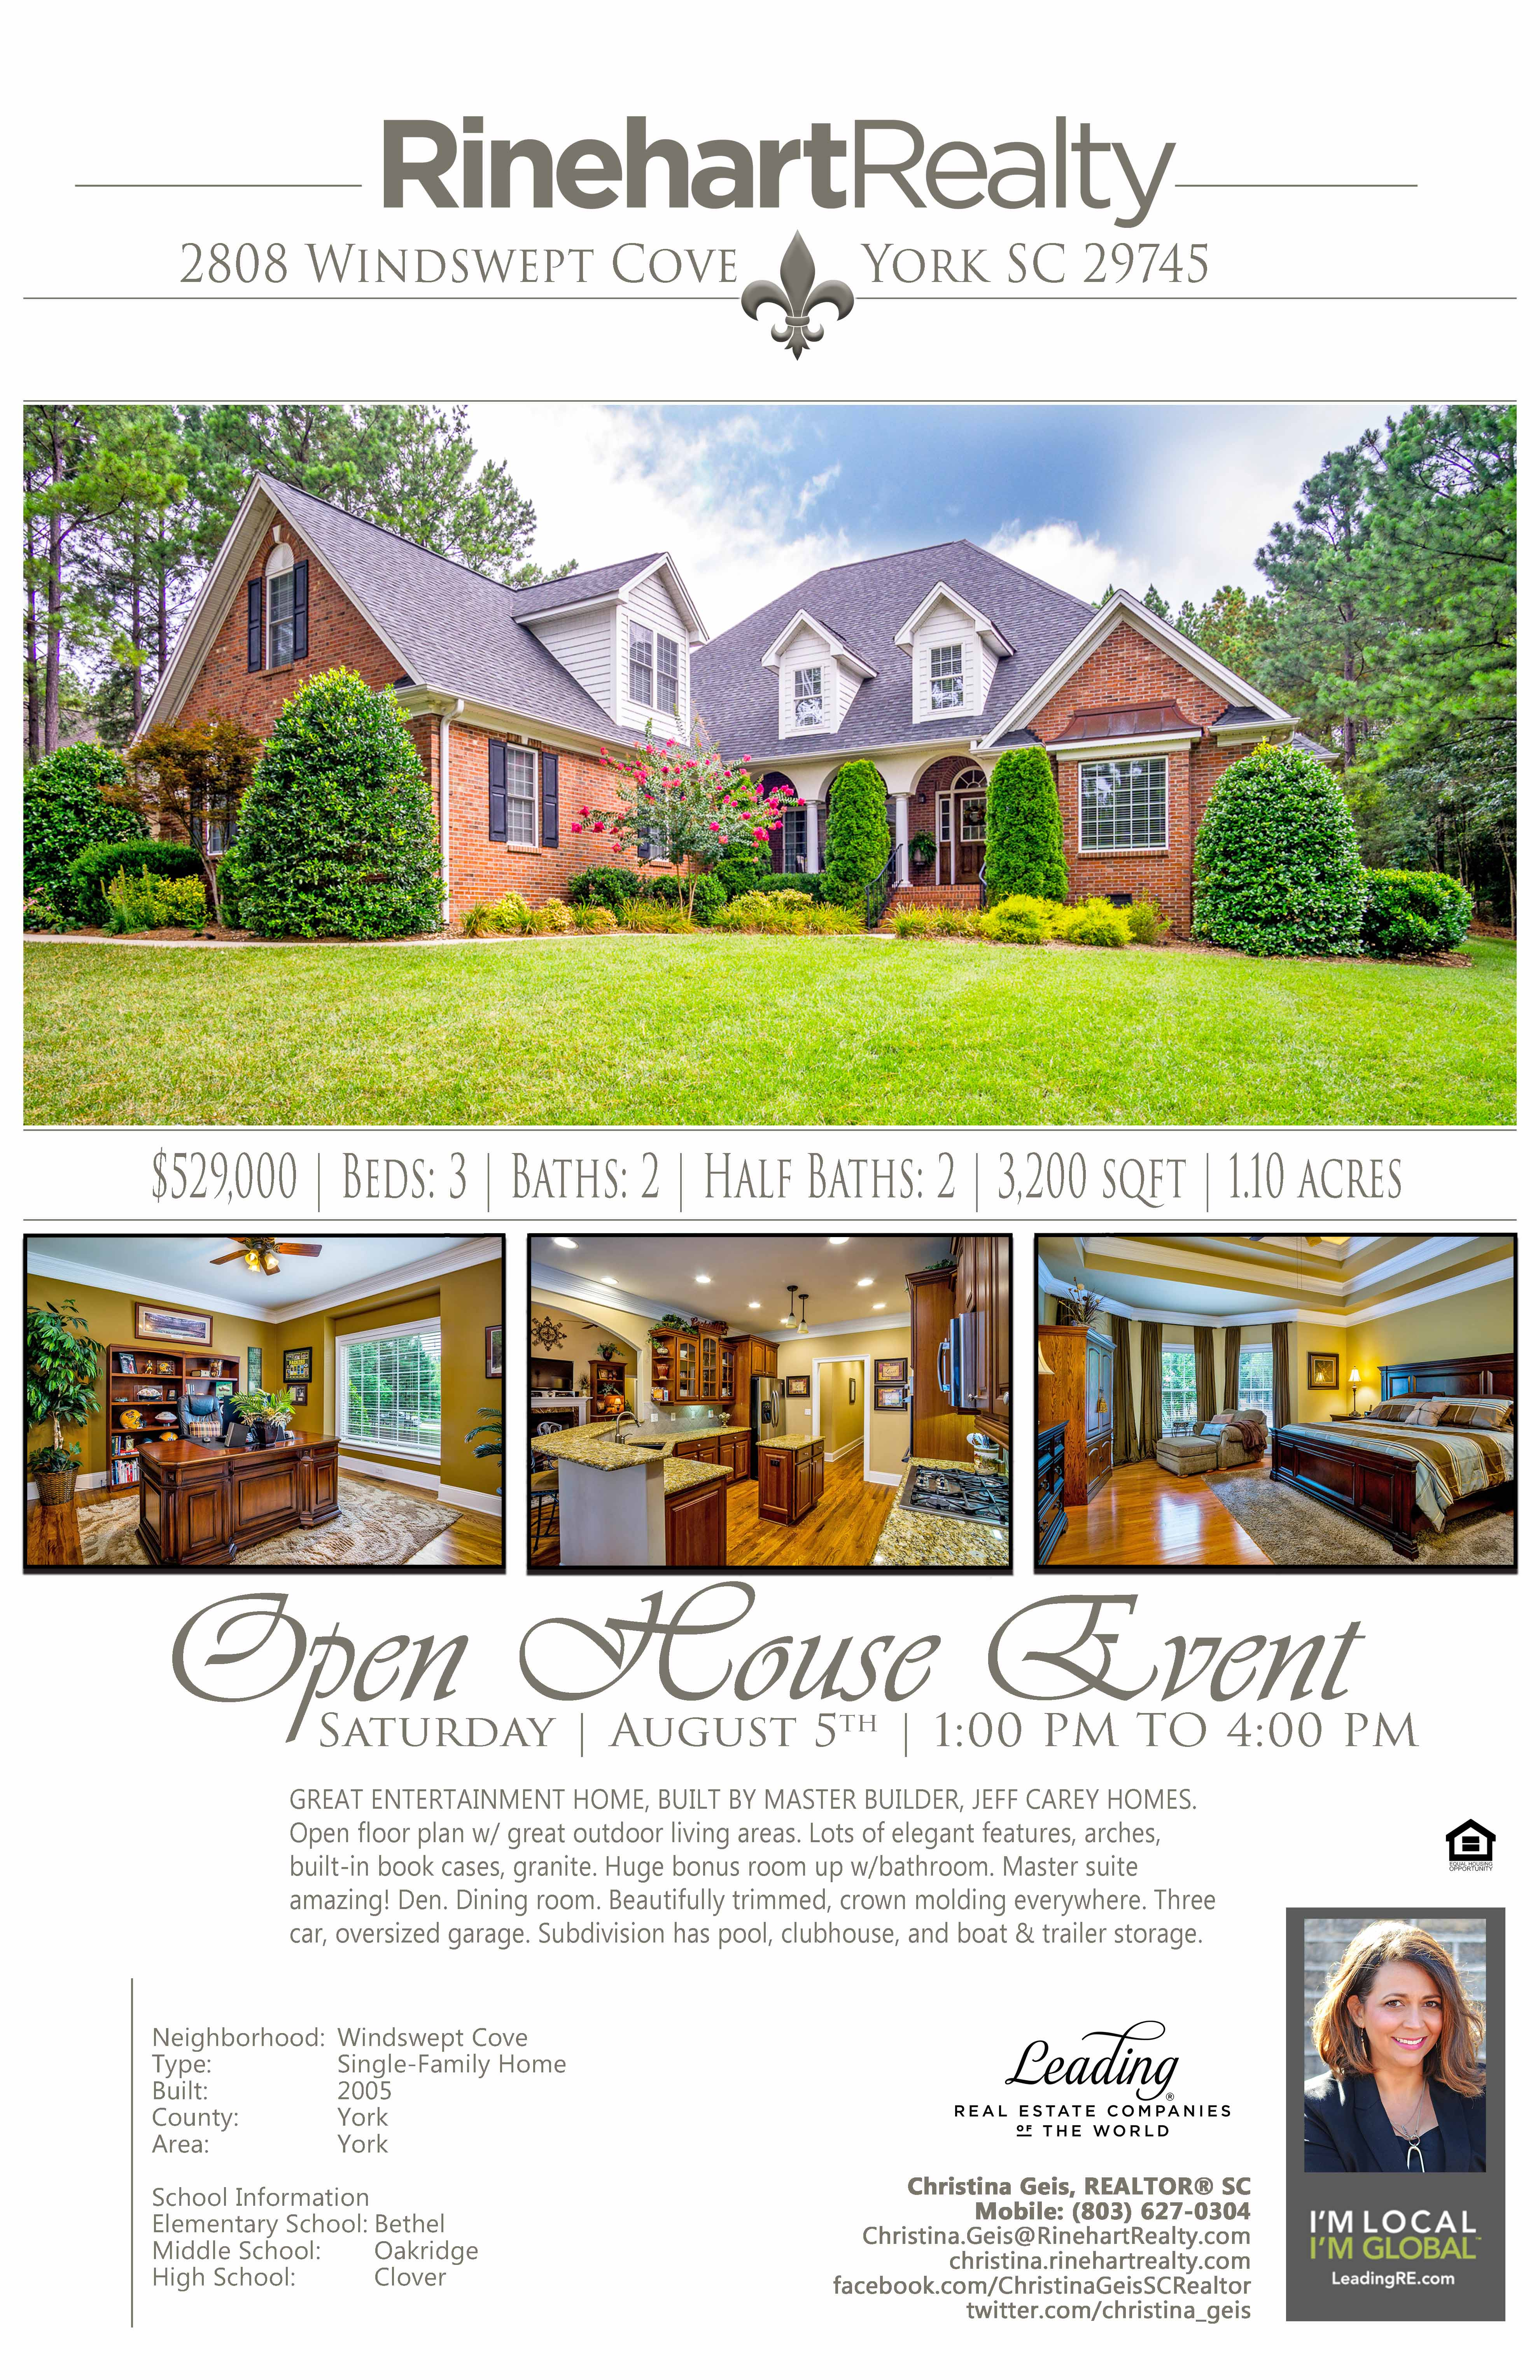 Open House Saturday August 5th 1 00 Pm To 4 00 Pm 2808